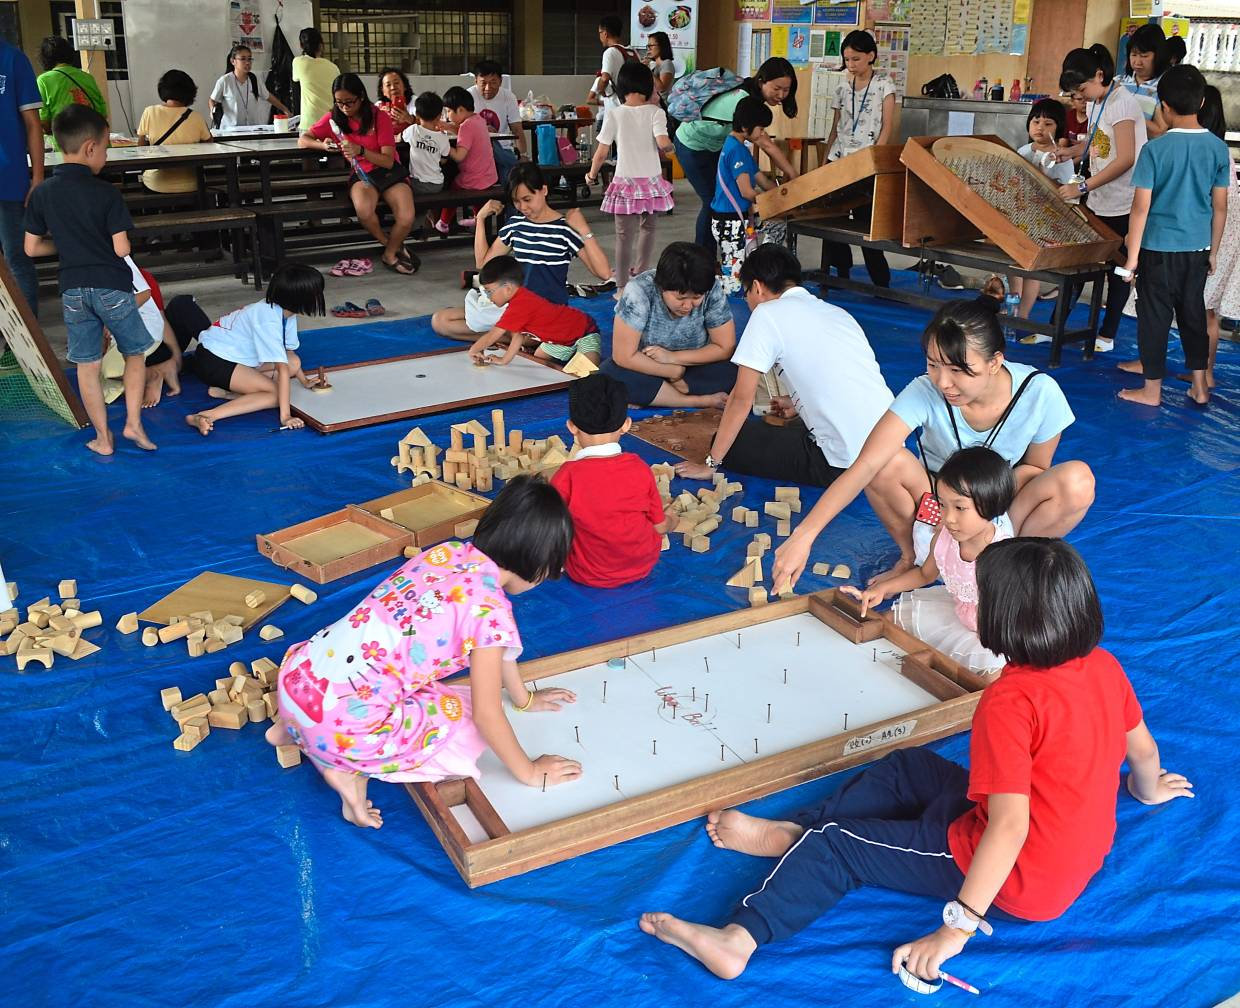 Children enjoying a game at the carnival.